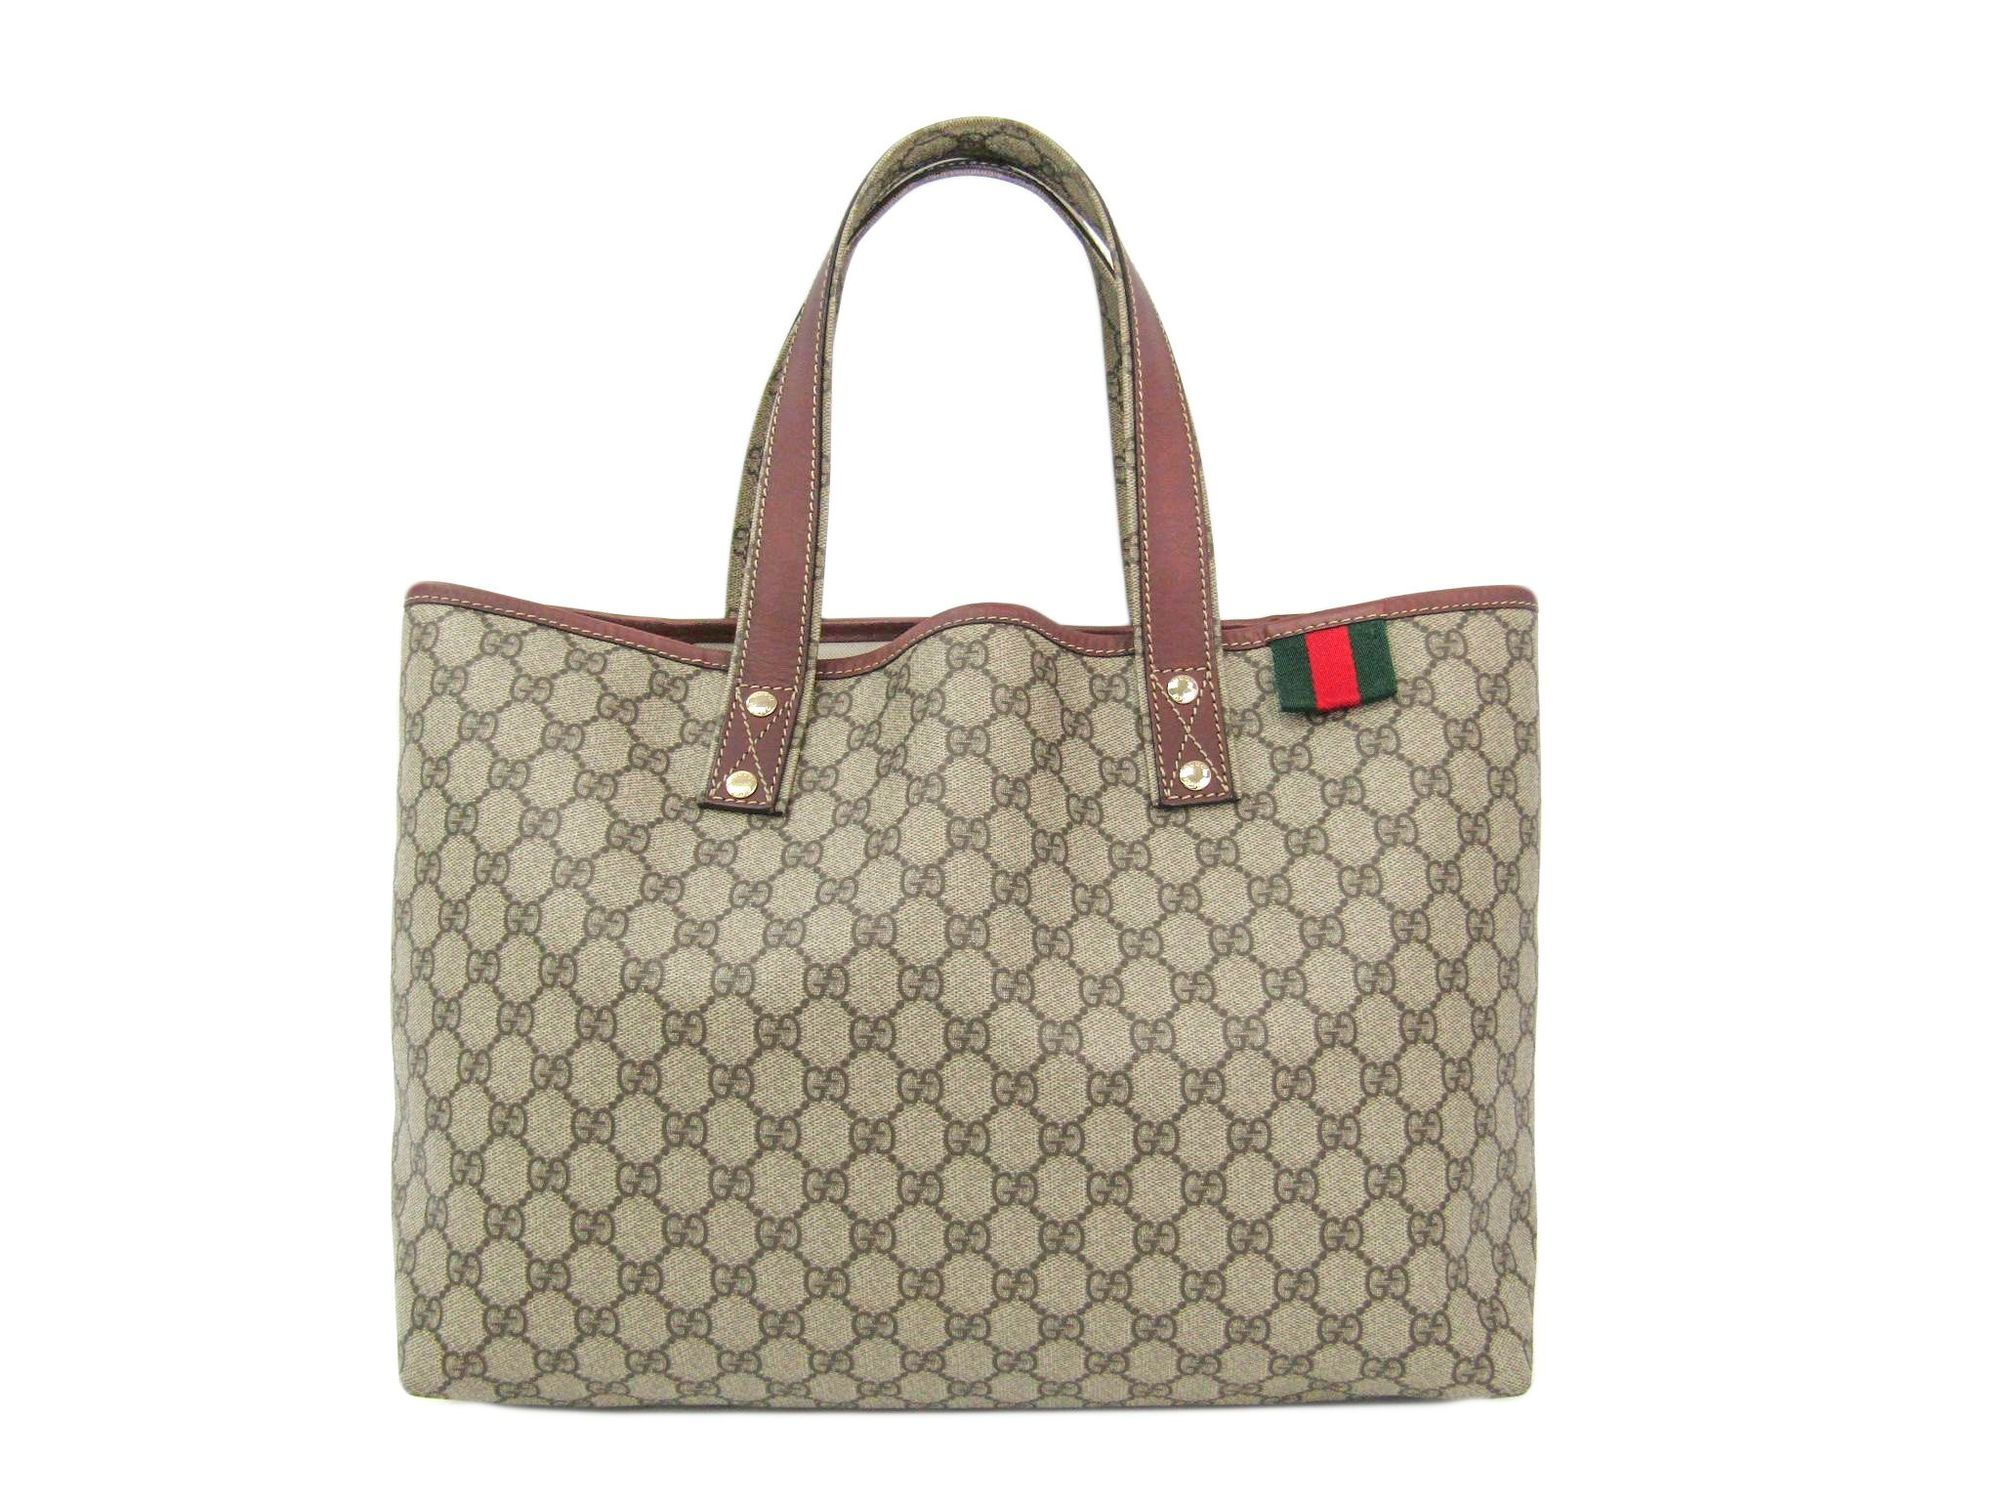 24cc8963aa0e Gucci Tote Bag Uk | Stanford Center for Opportunity Policy in Education